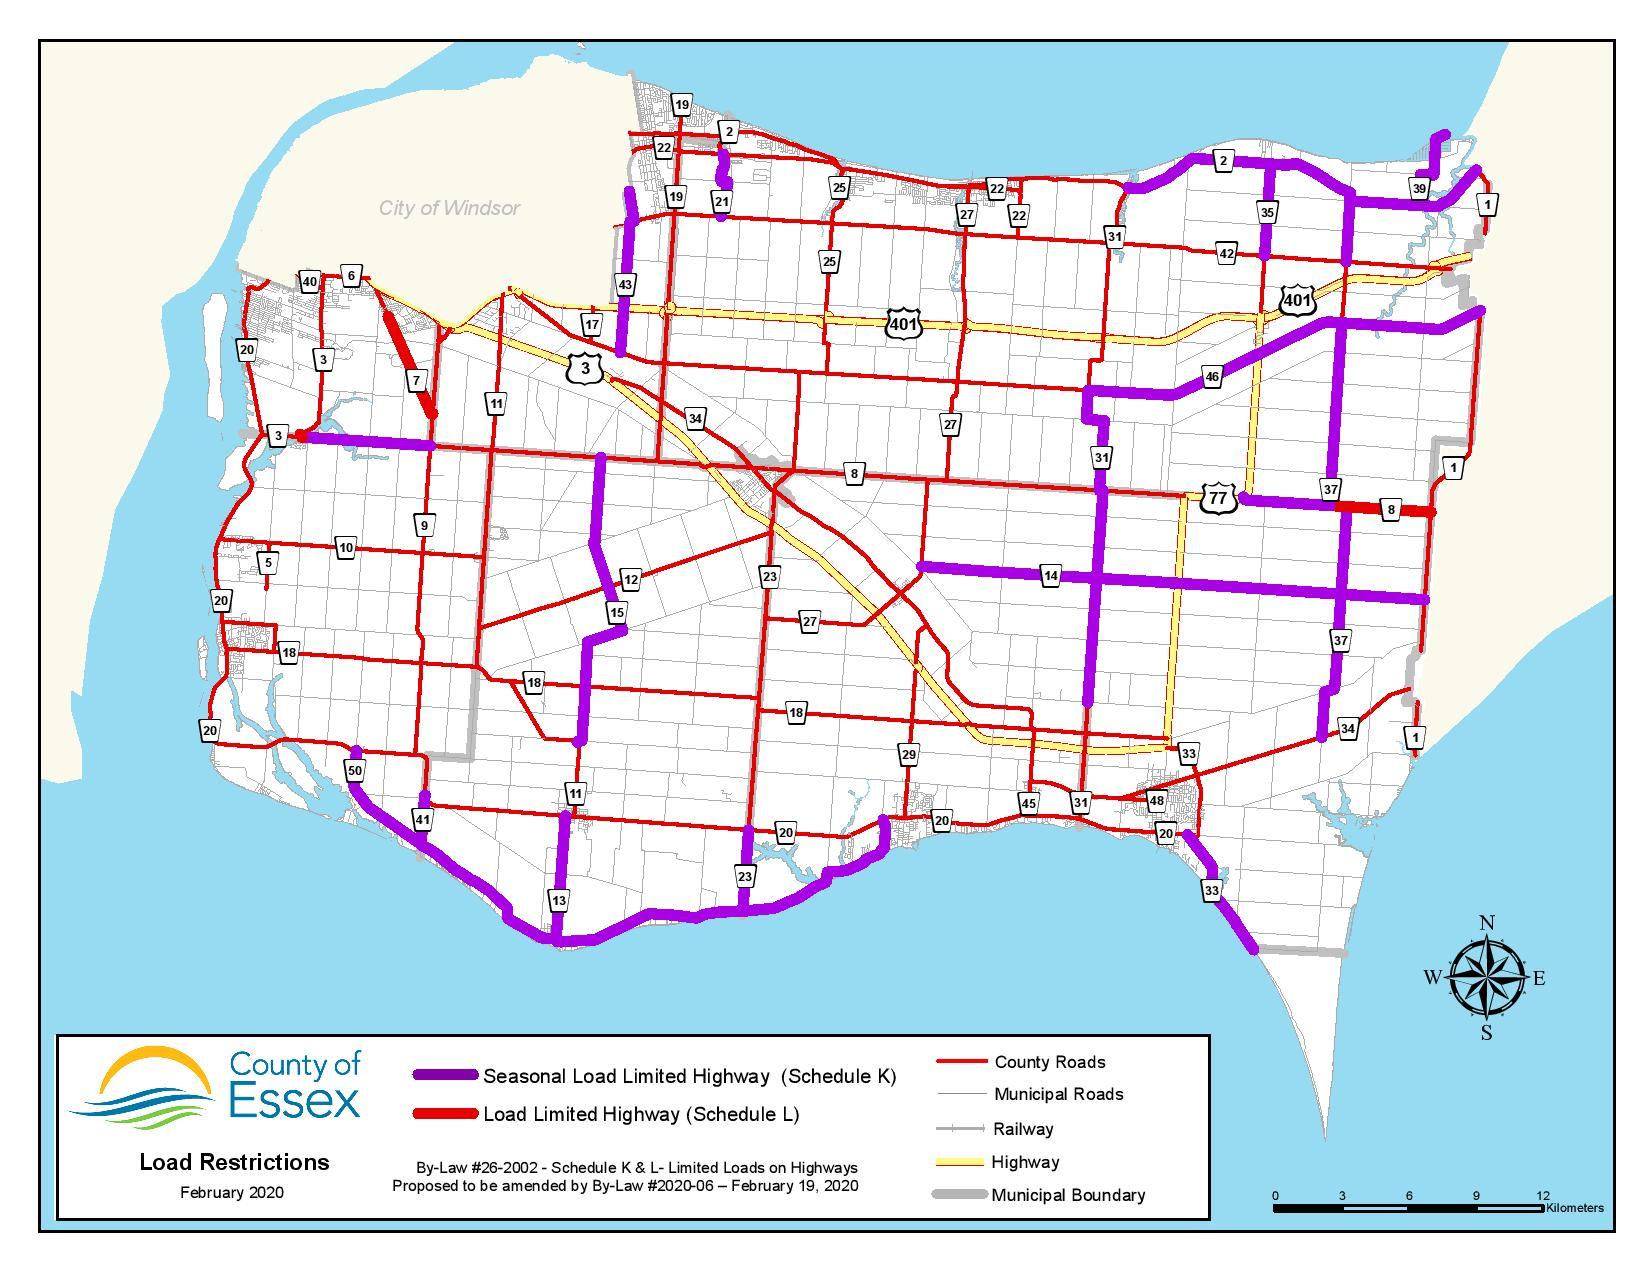 A map showing load restriction on County of Essex roads